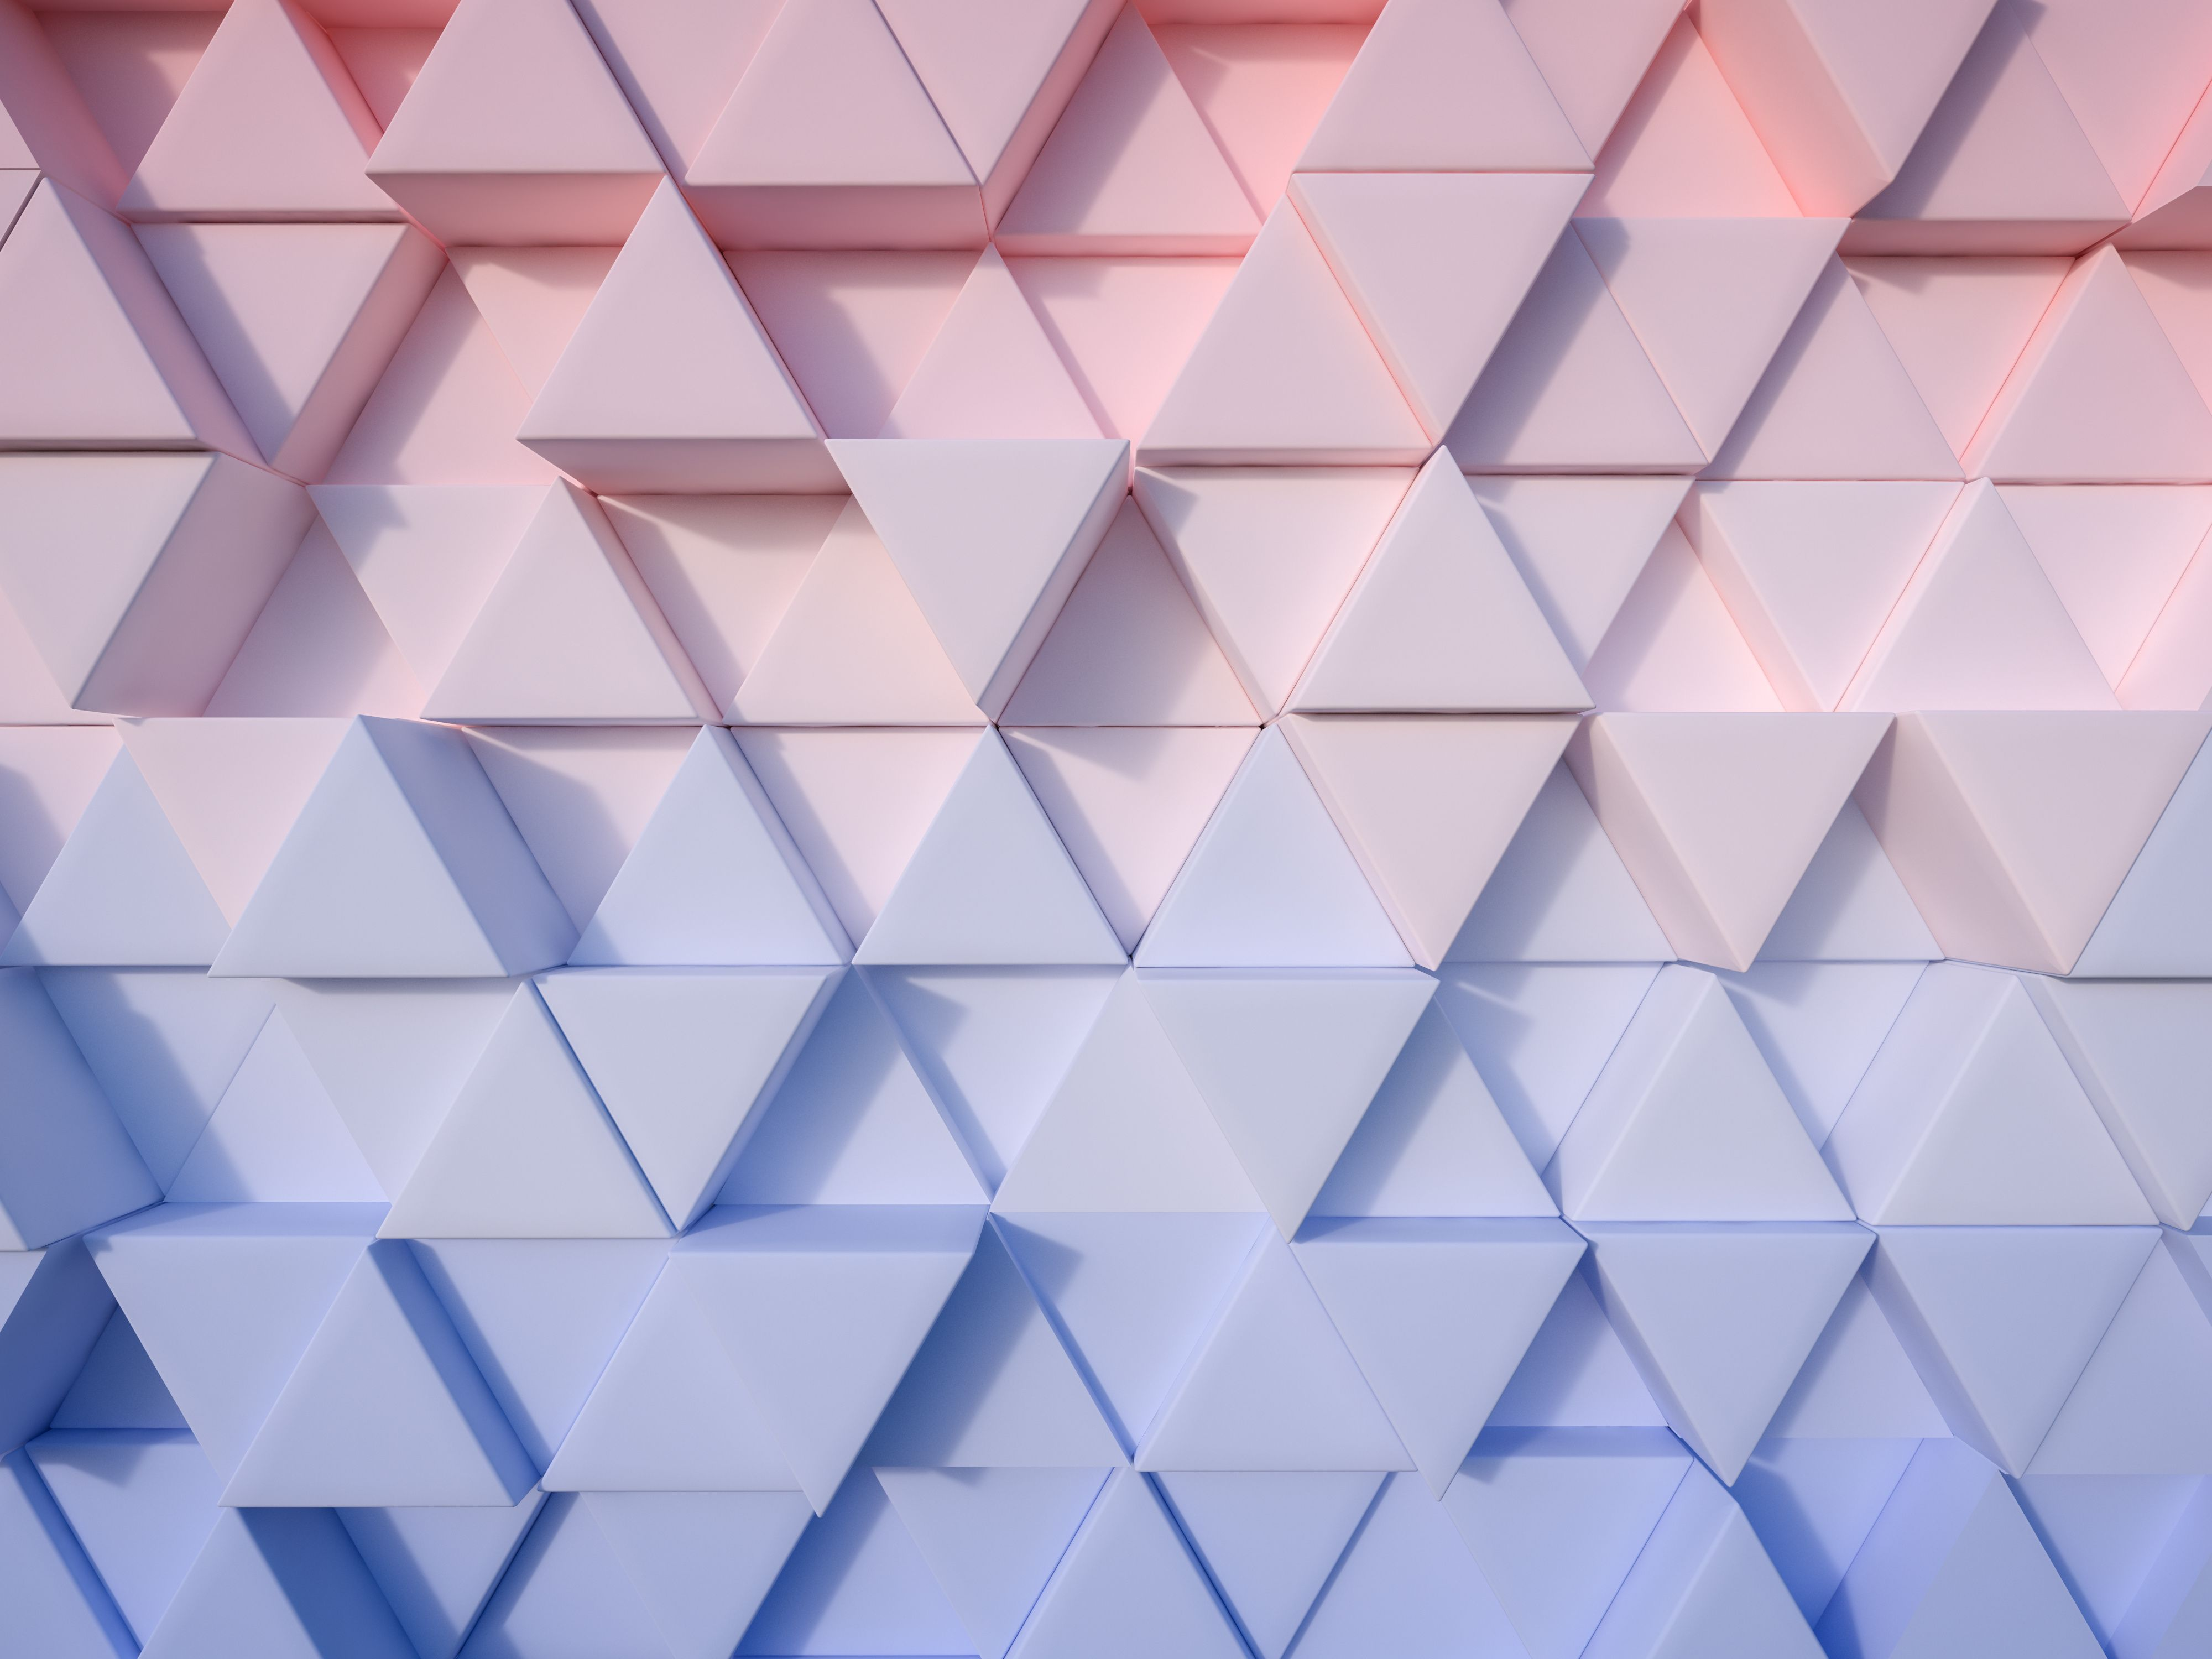 serenity blue and rose quartz abstract 3d triangle background rose quartz en serenity. Black Bedroom Furniture Sets. Home Design Ideas